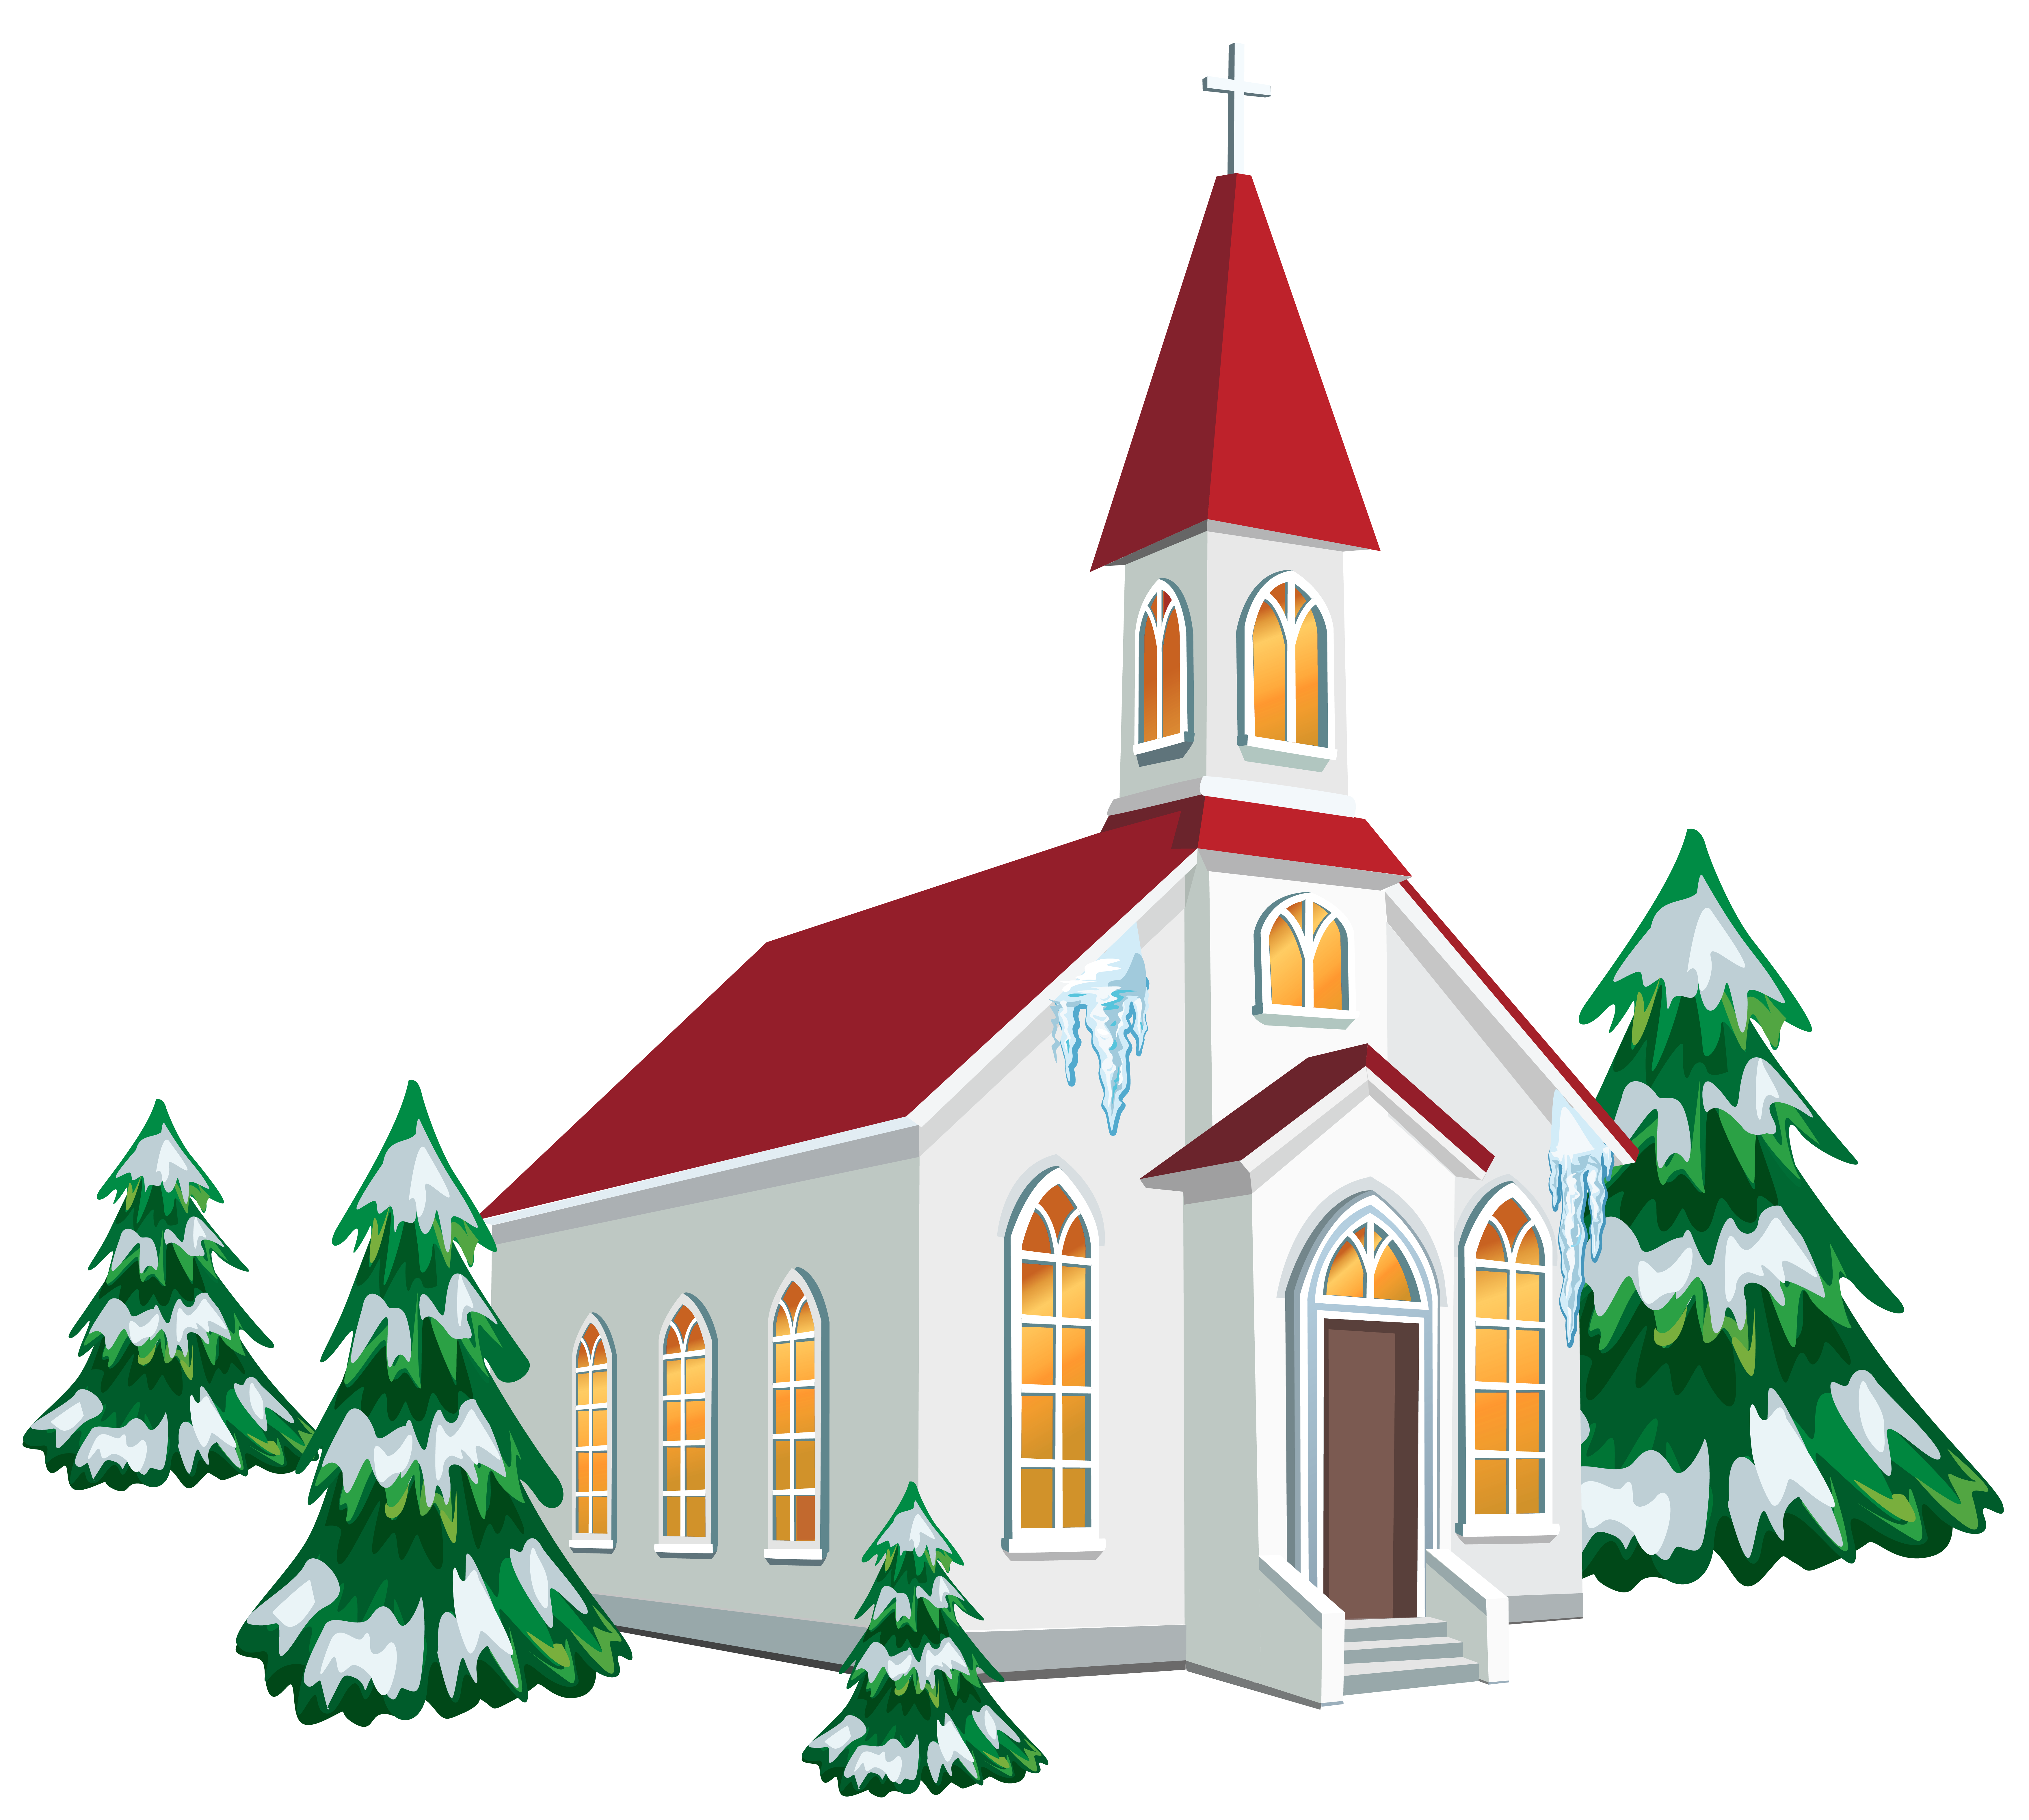 Clipart church. Winter with snow trees